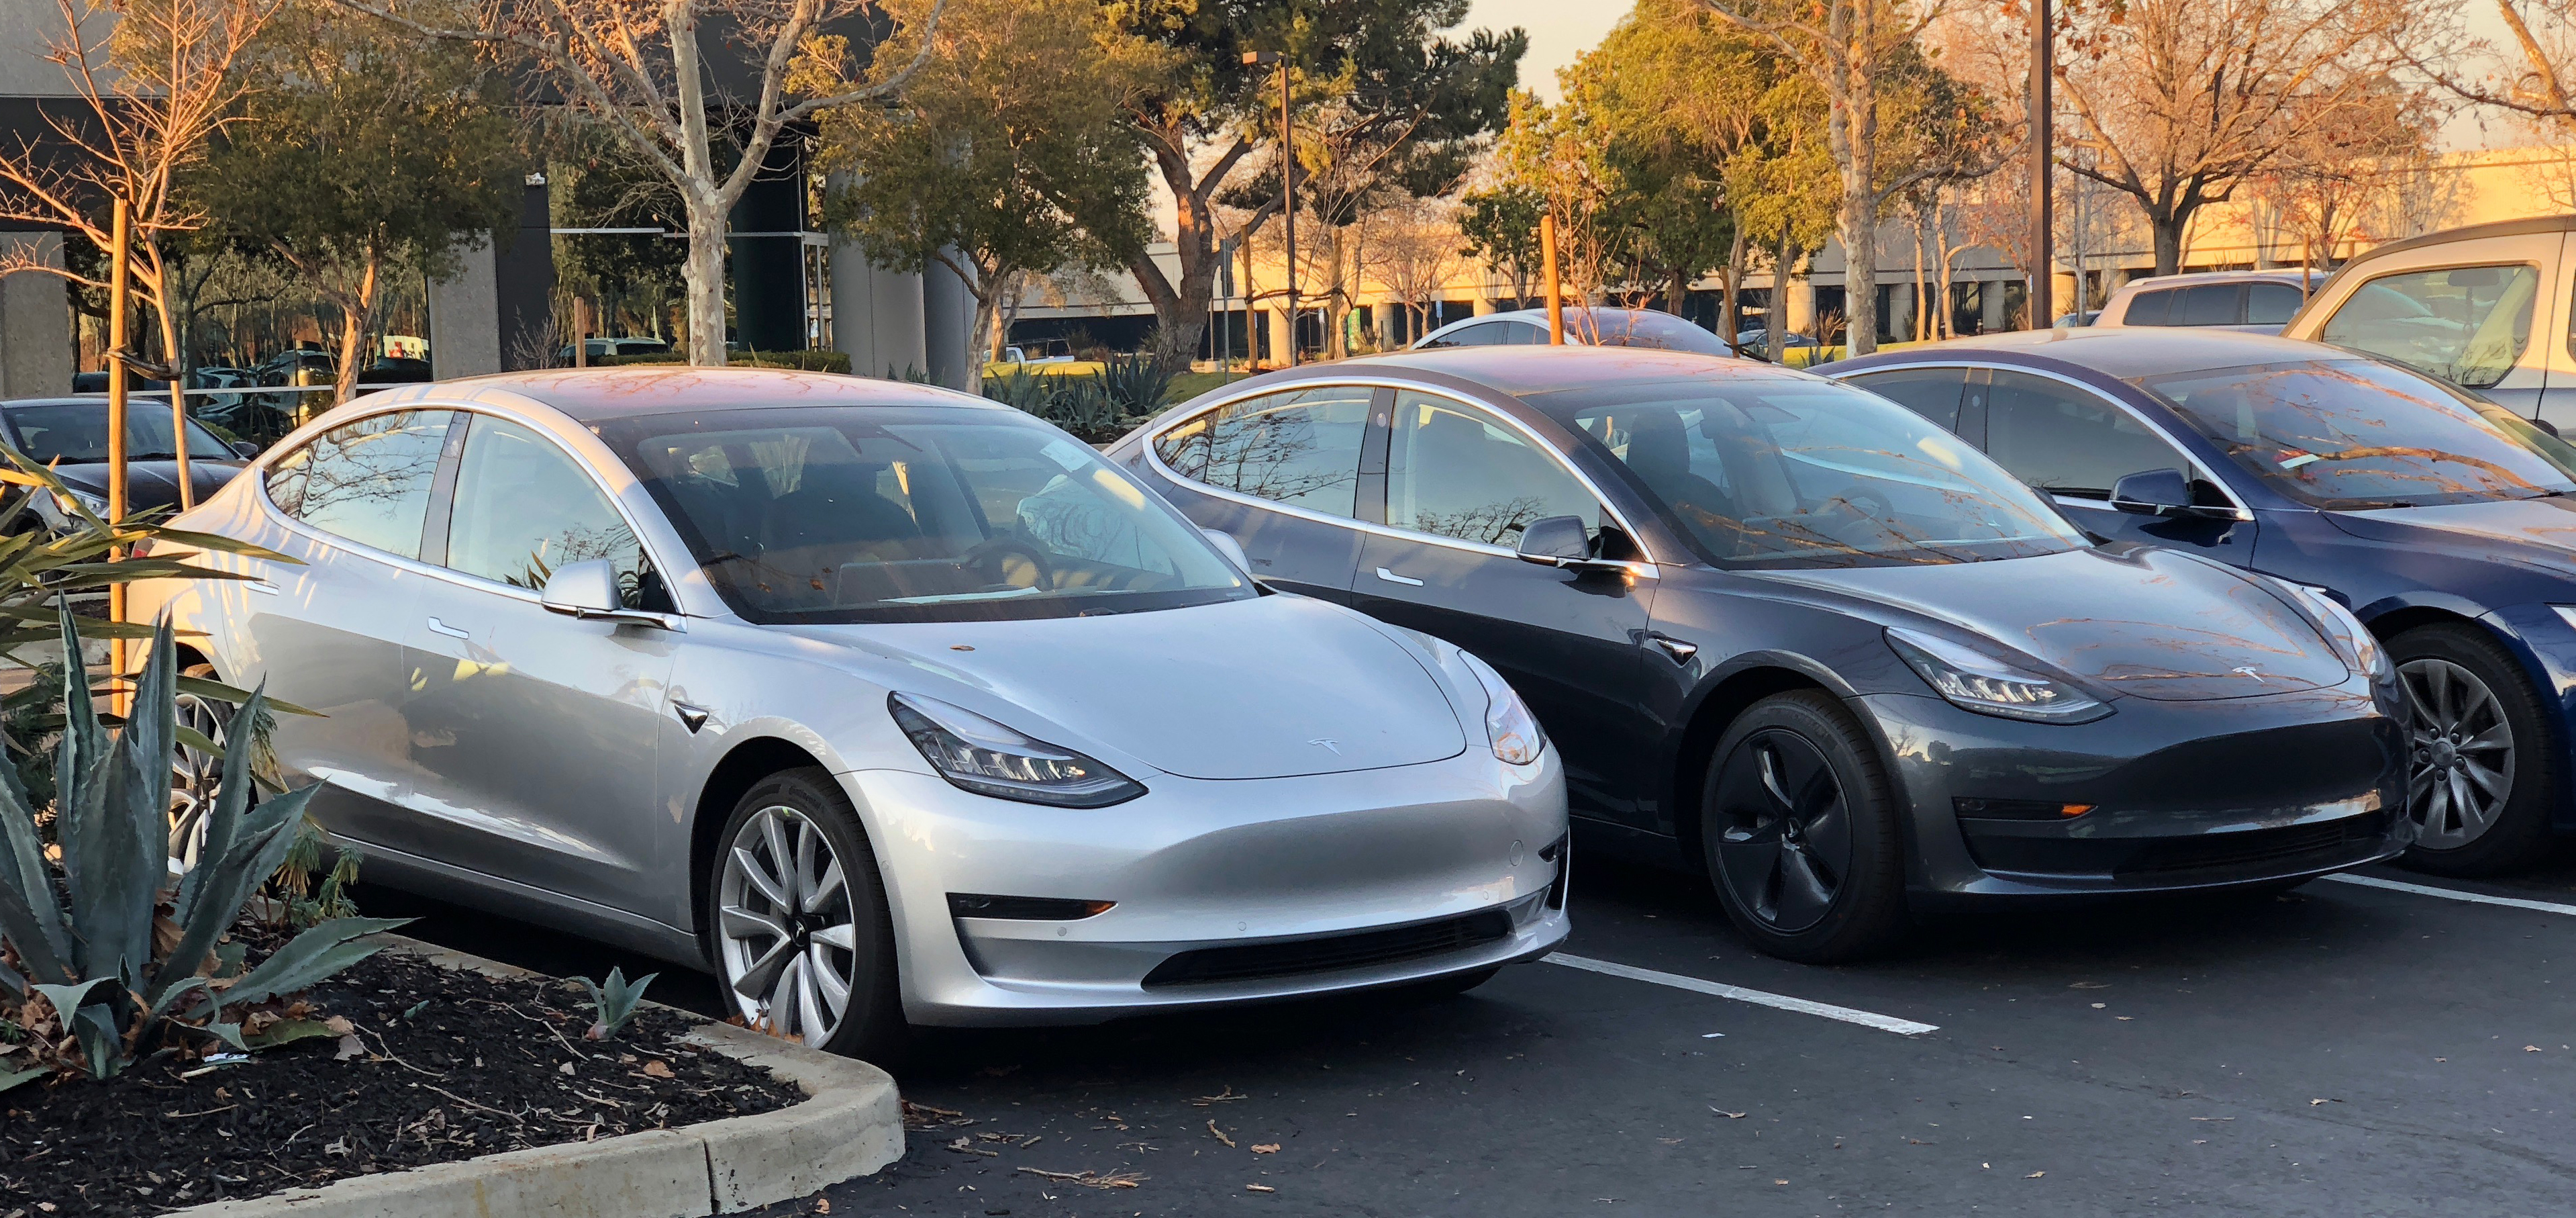 Tesla cars in parking lot